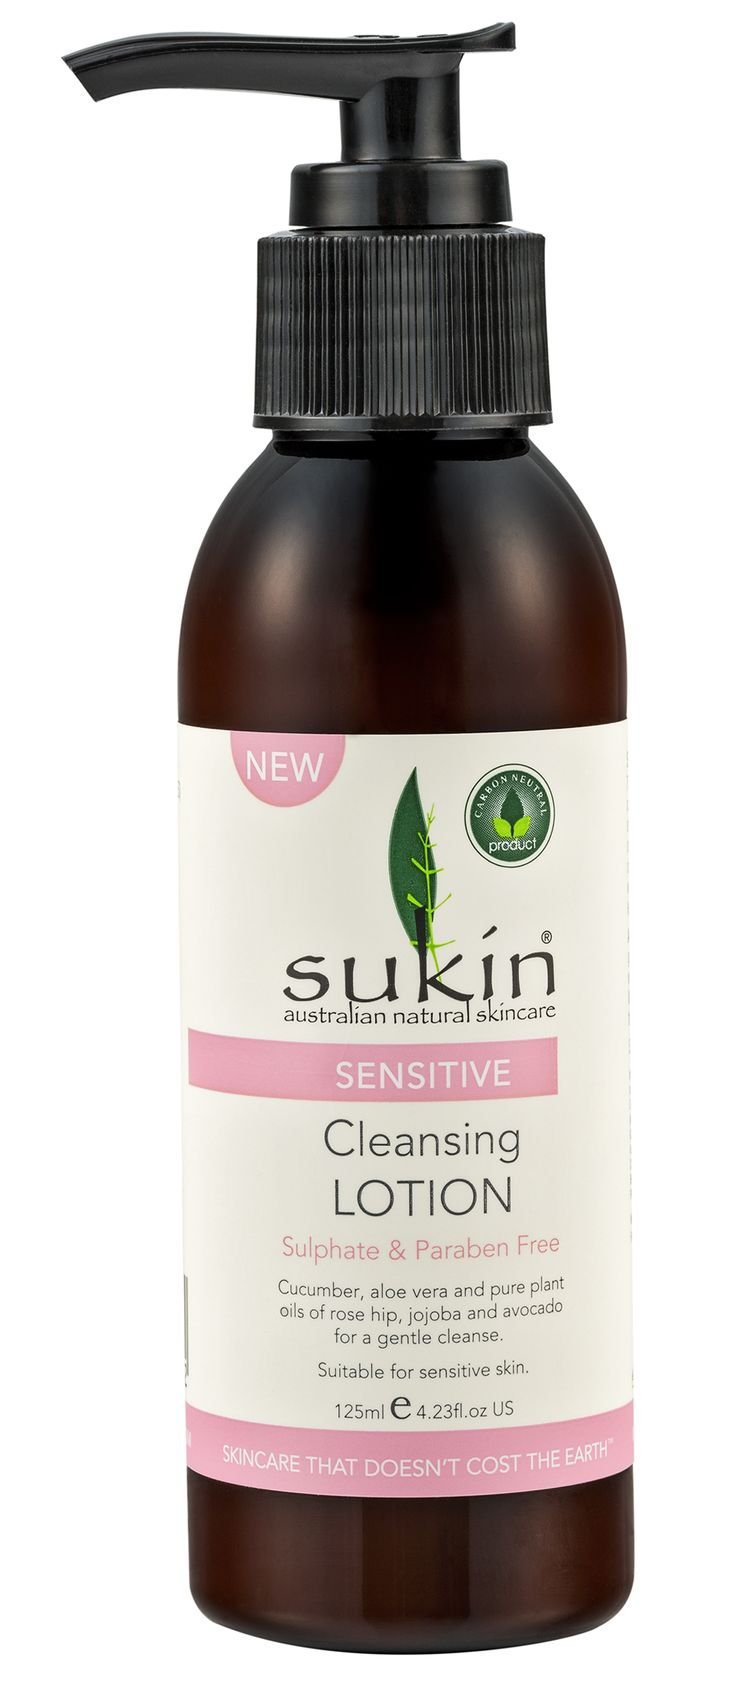 Sukin Sensitive Cleansing Lotion